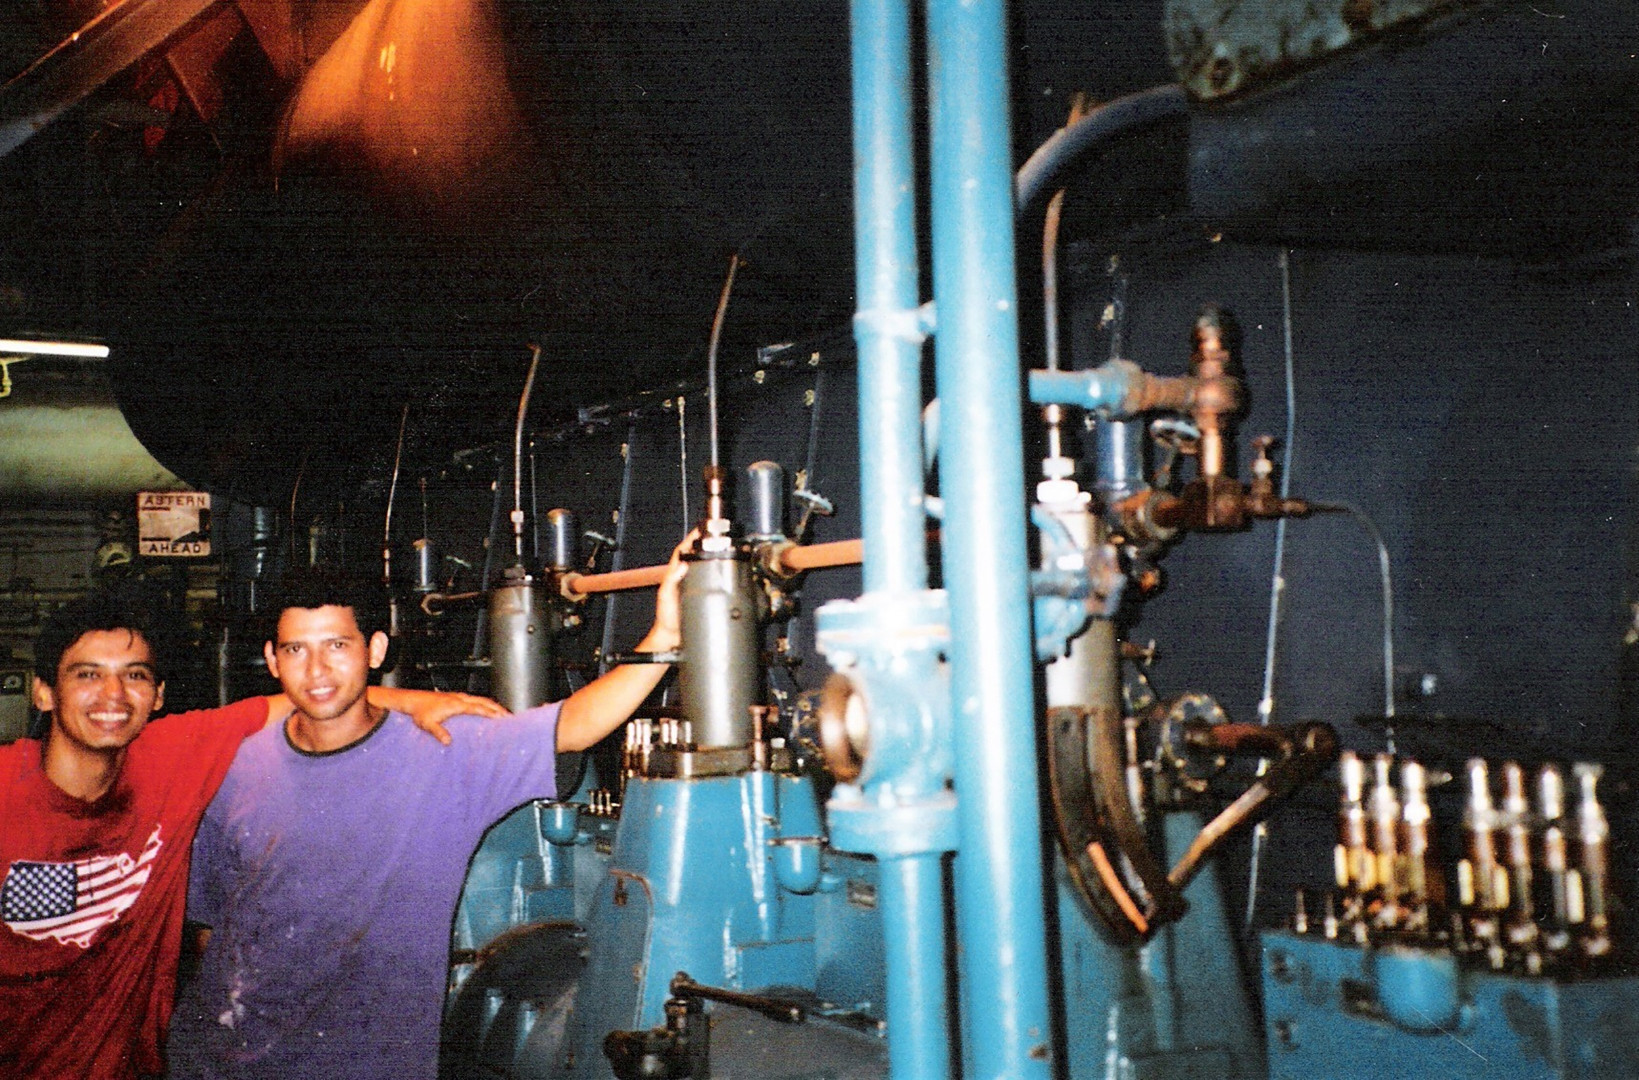 Vio and Oscar working inside the Spirit ship's engine room